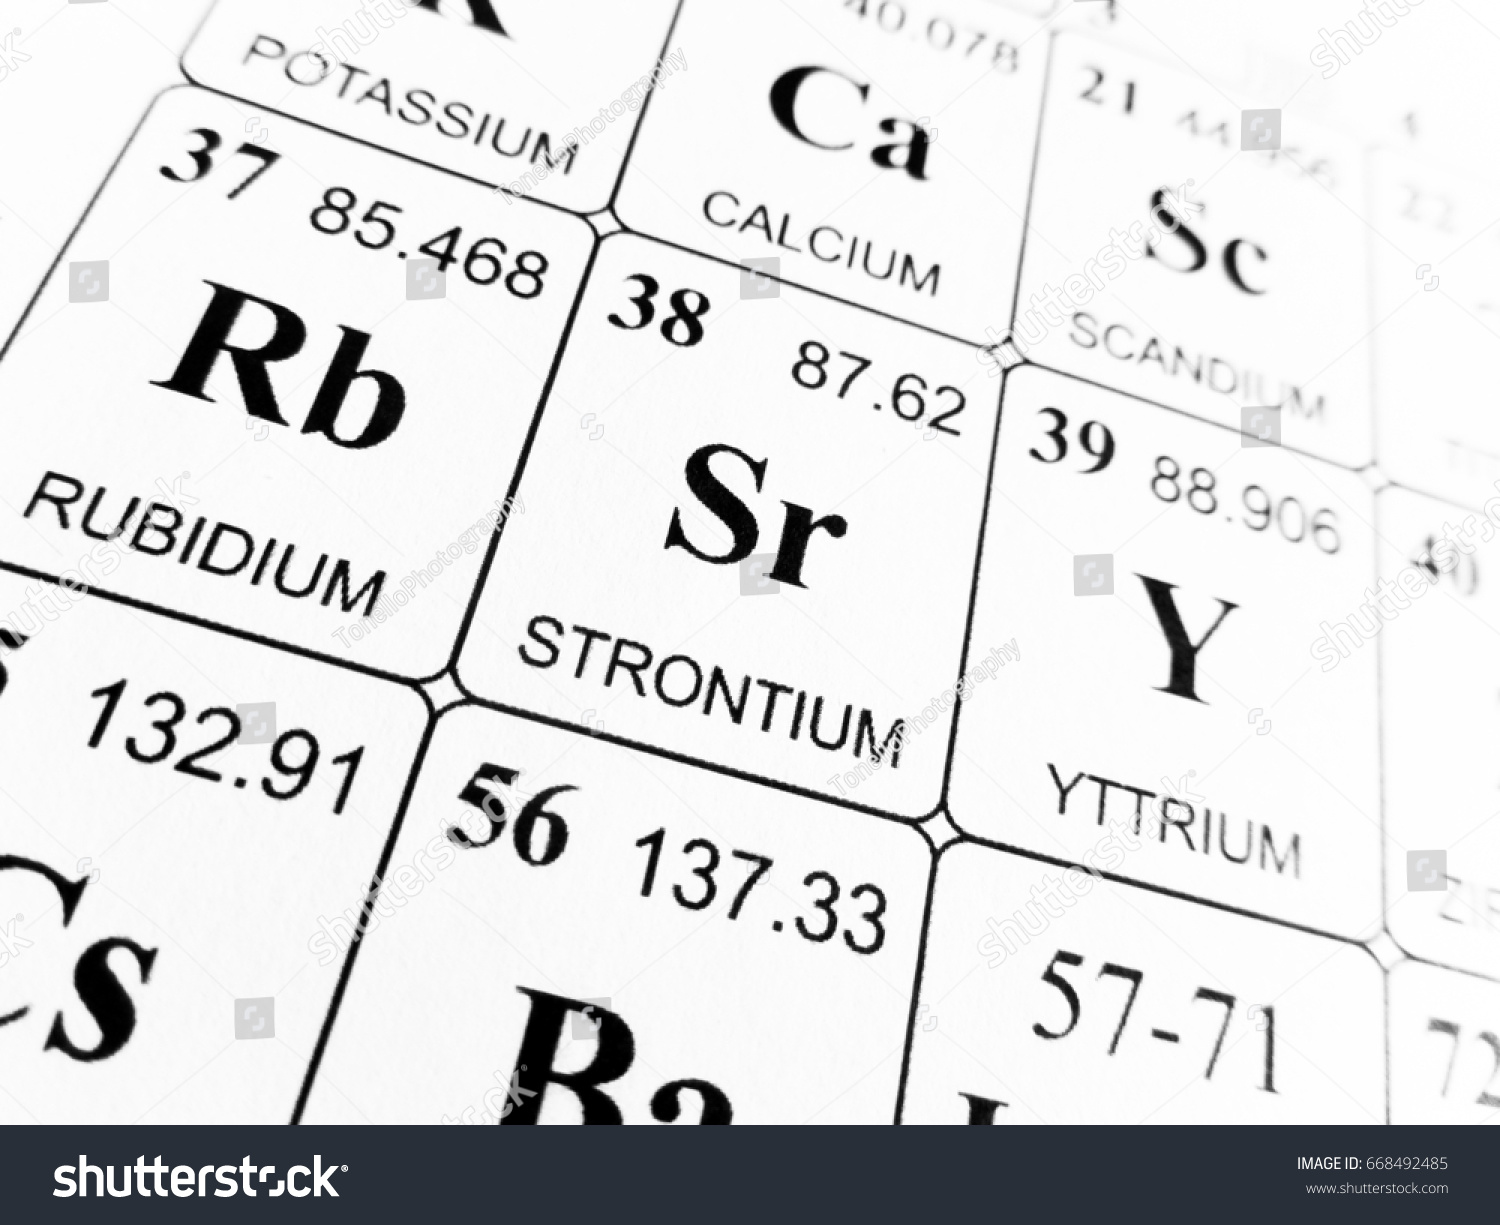 39 periodic table image collections periodic table images yttrium on the periodic table choice image periodic table images periodic table 39 images periodic table gamestrikefo Gallery